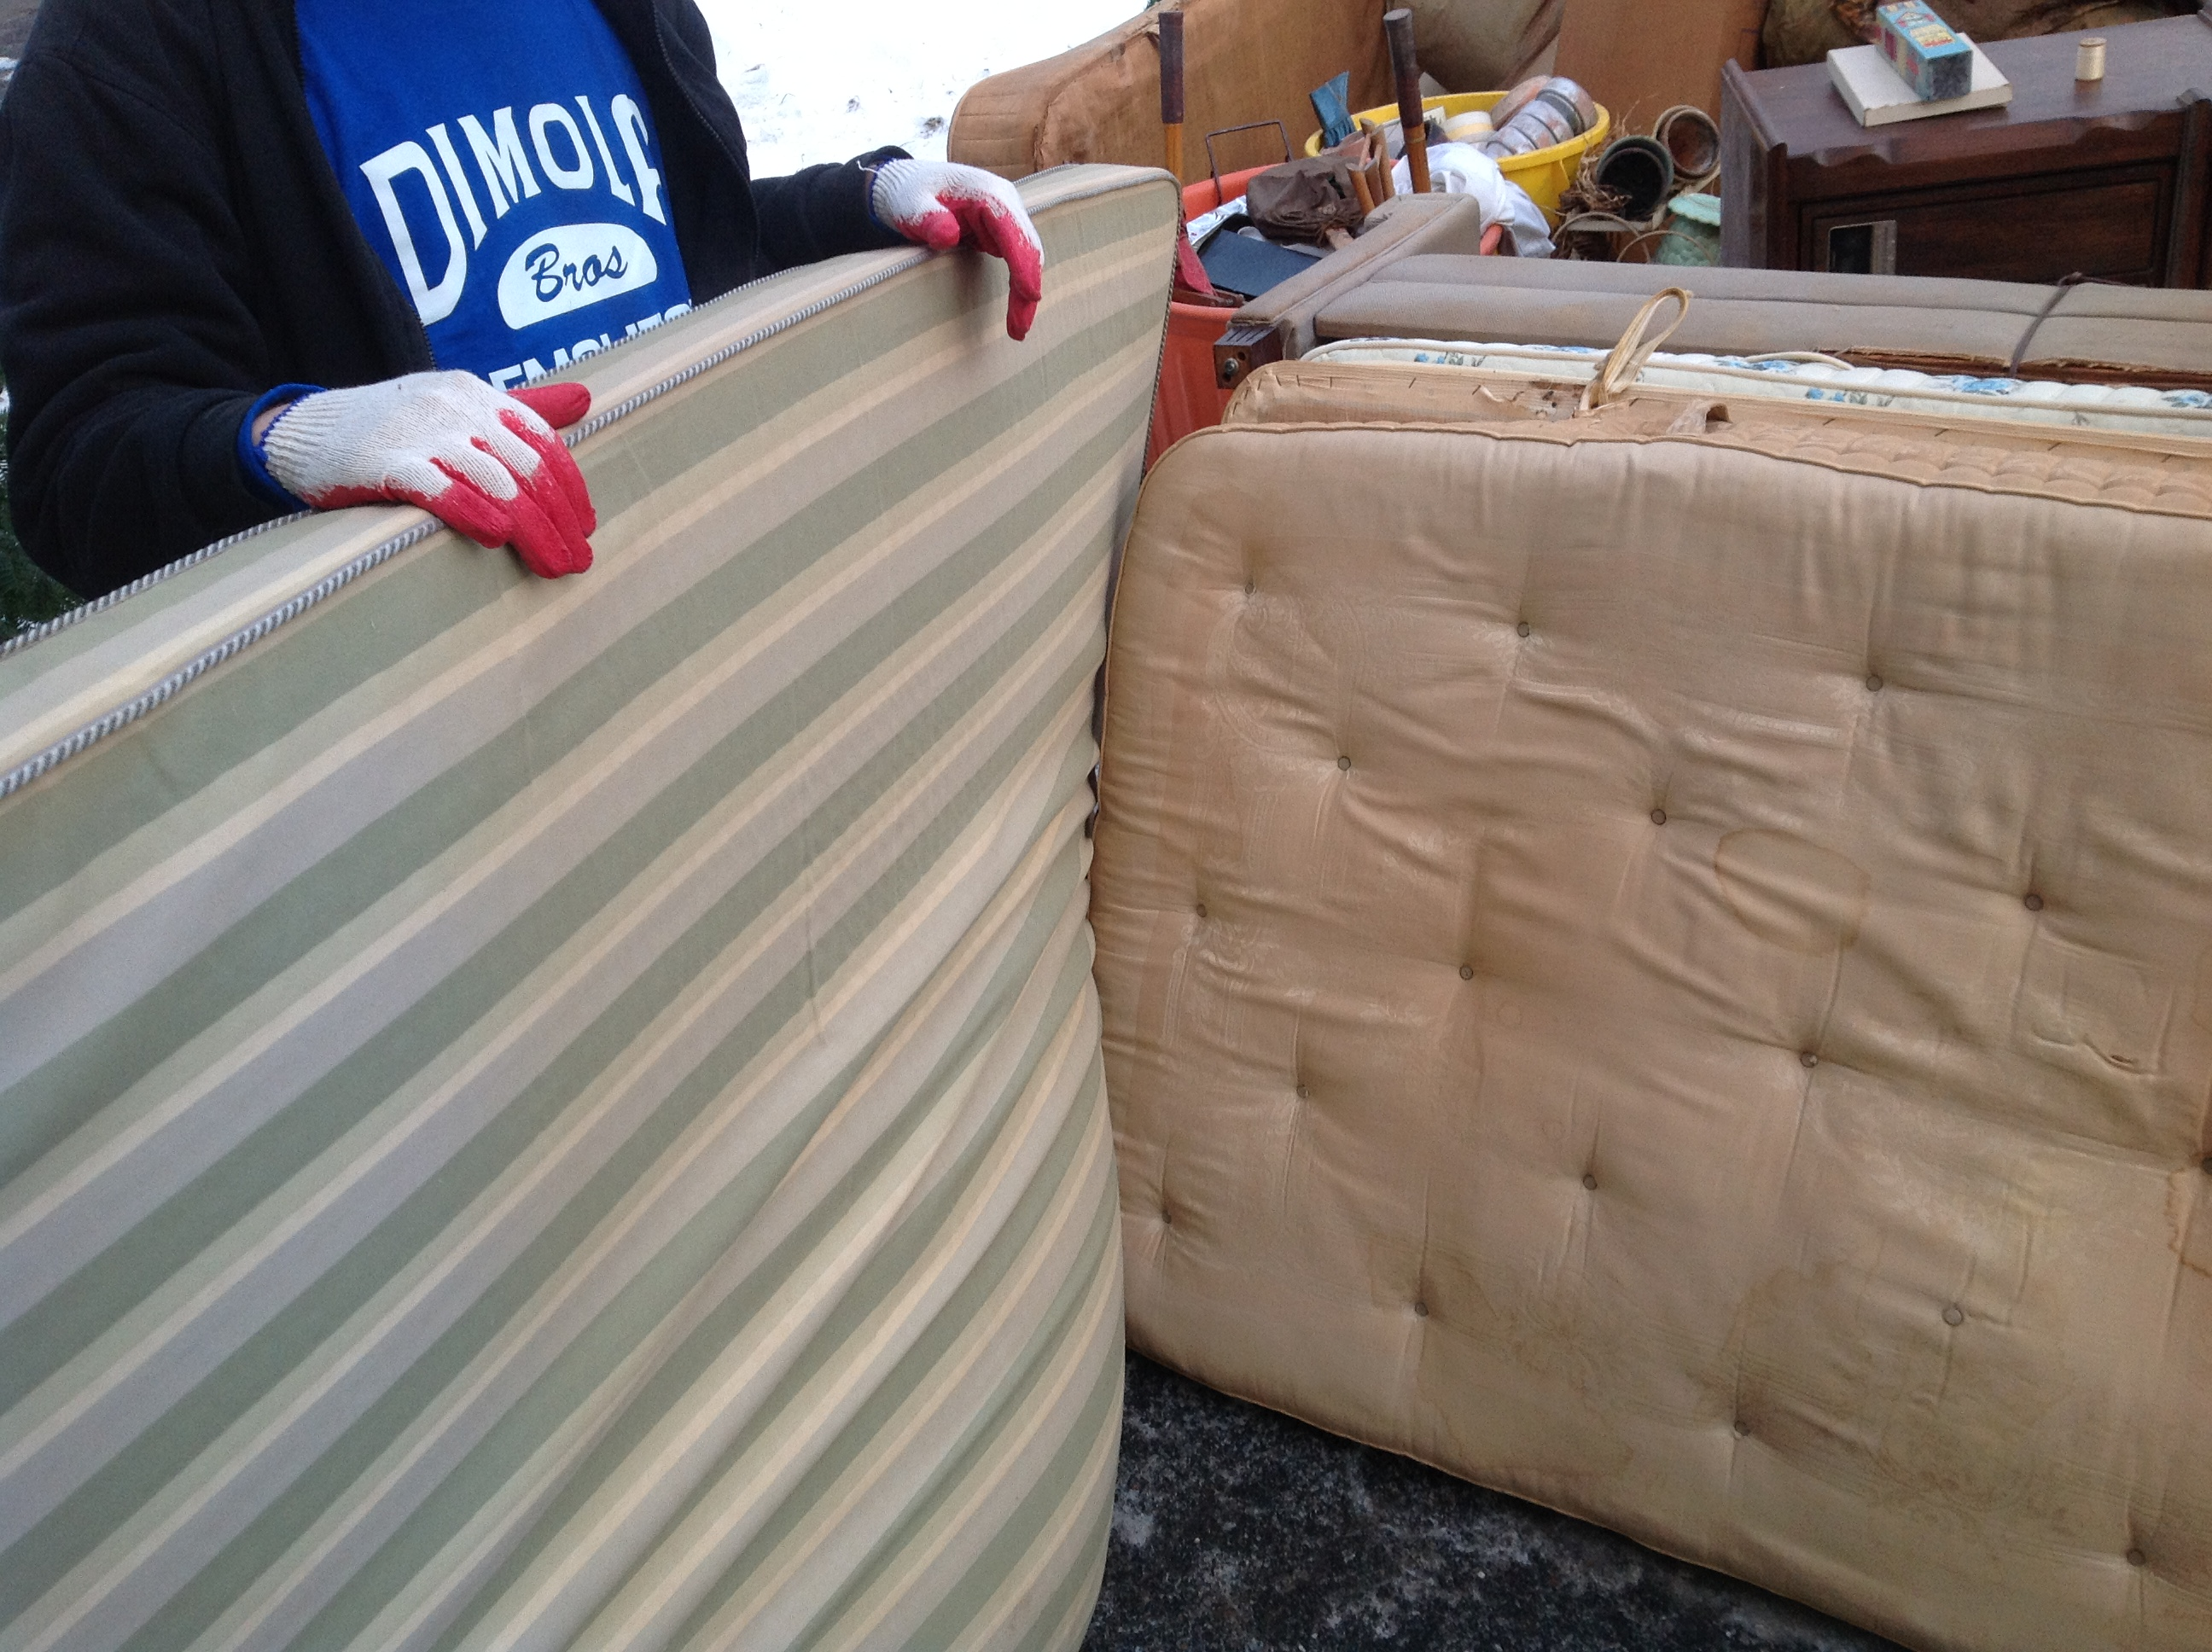 Junk Removal Job Company Finds 50 Year Old Mattress In